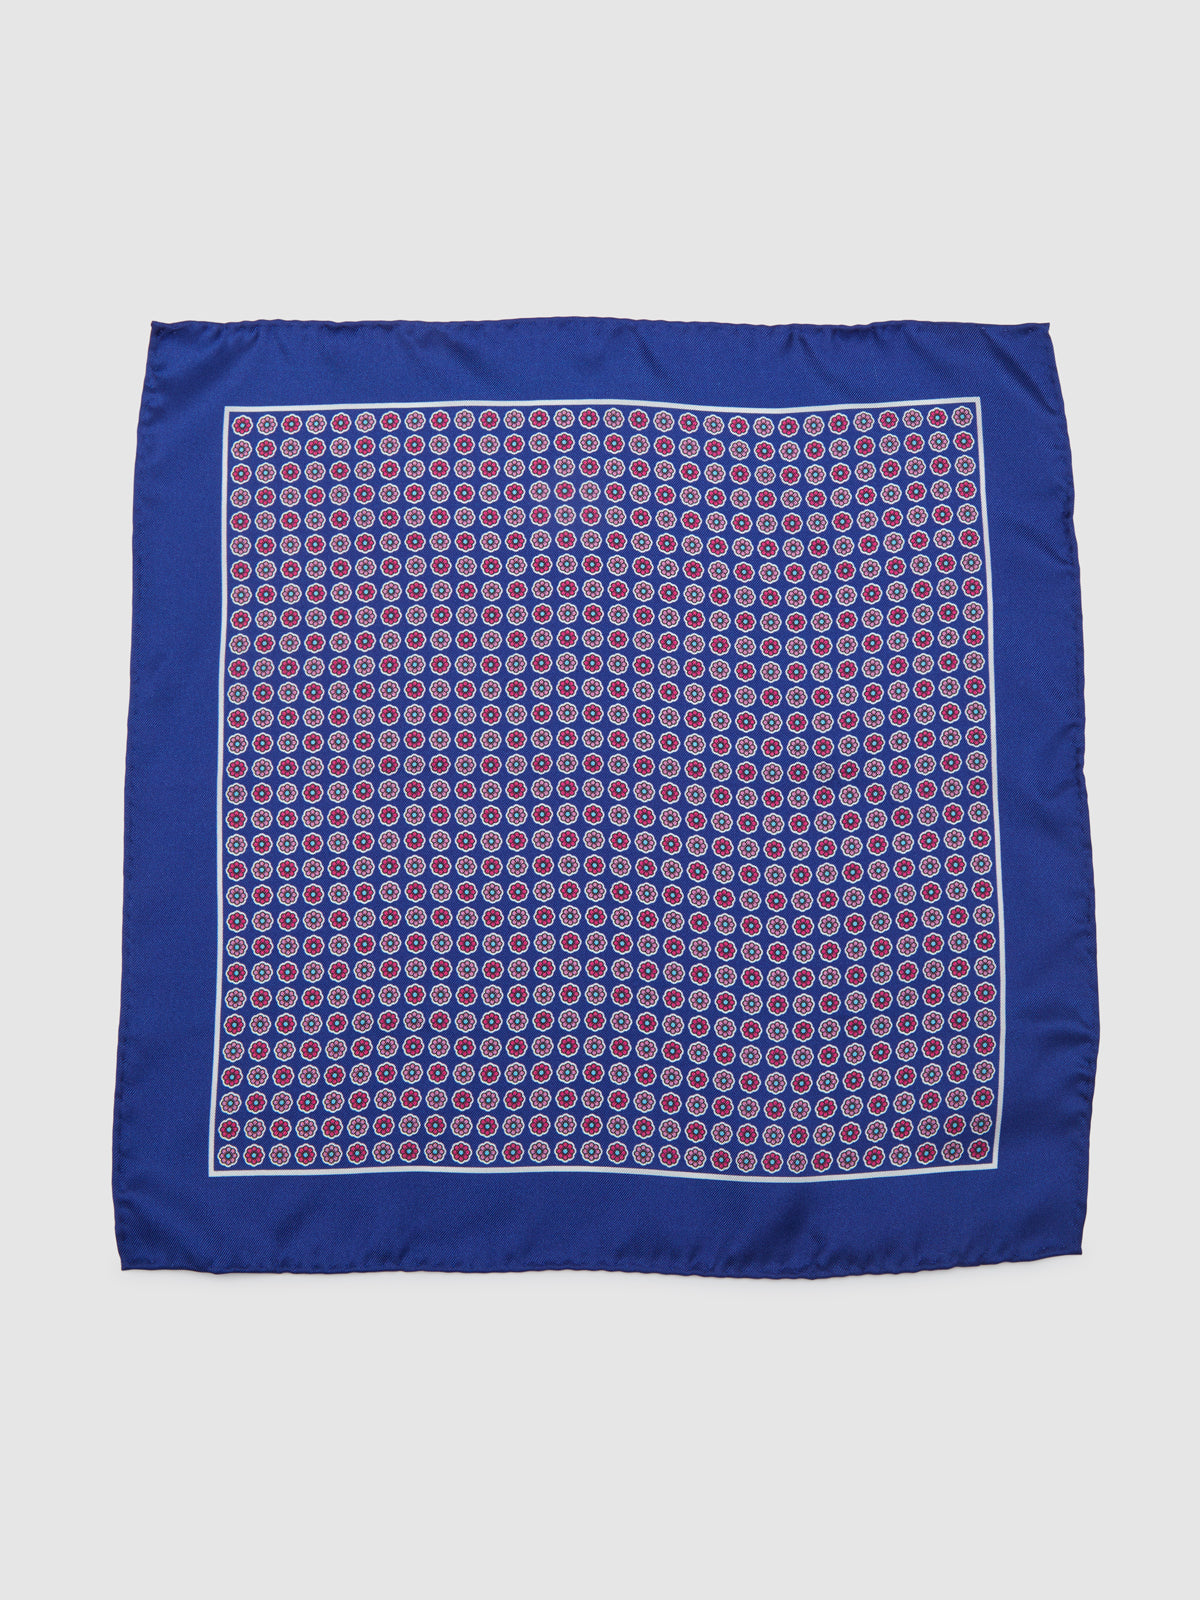 FLORAL GRID POCKET SQUARE BLUE/PINK